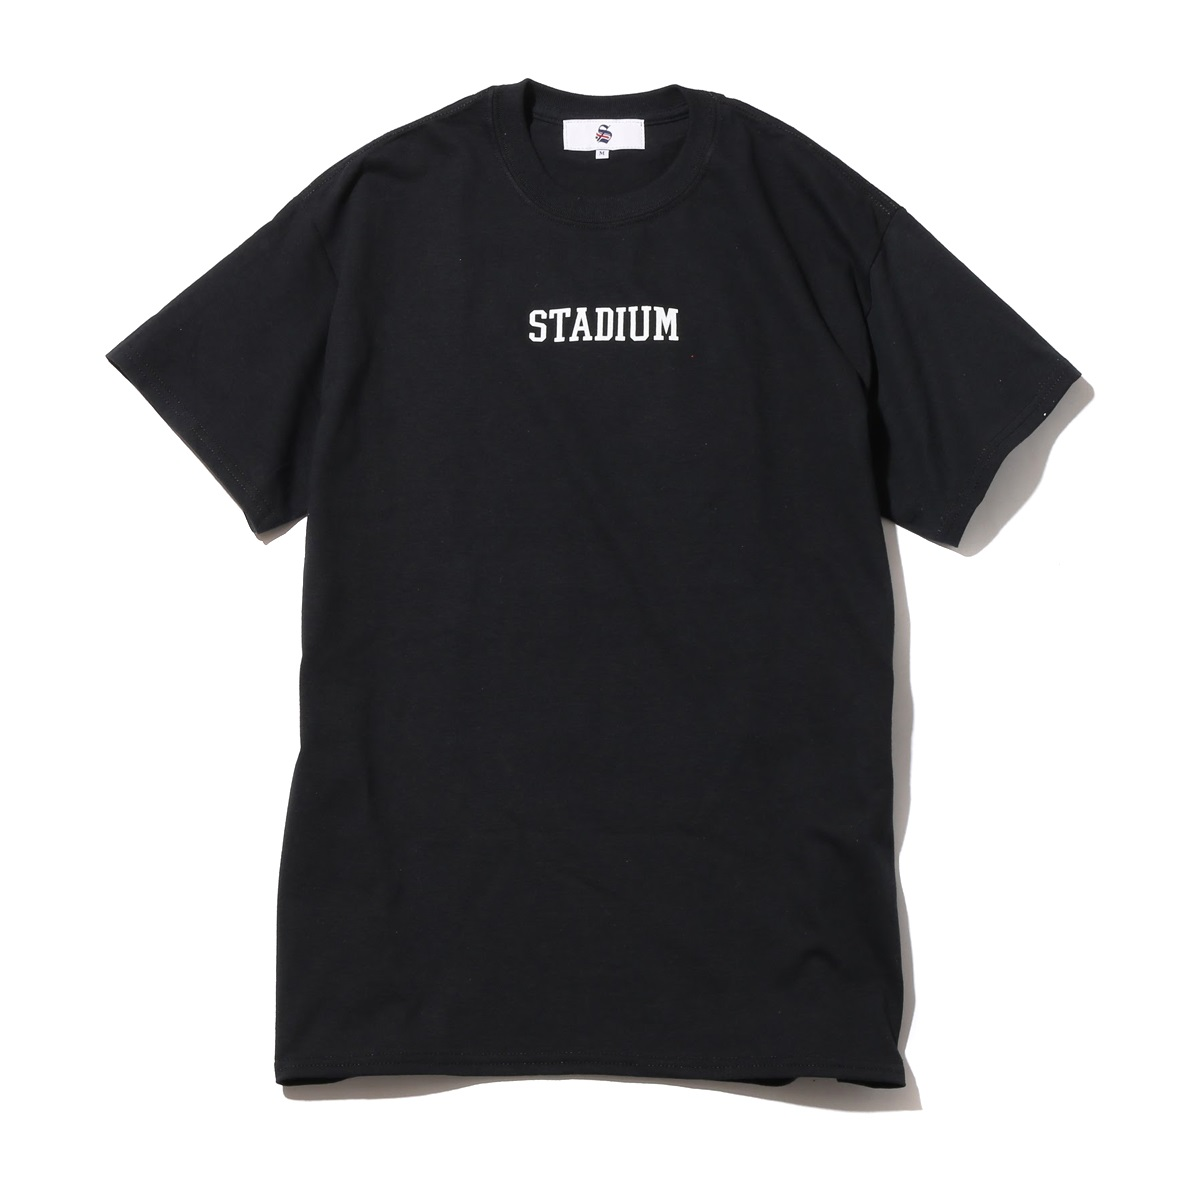 stadium-pop-up-shop-at-chapter-harajuku-annex-open-20170616